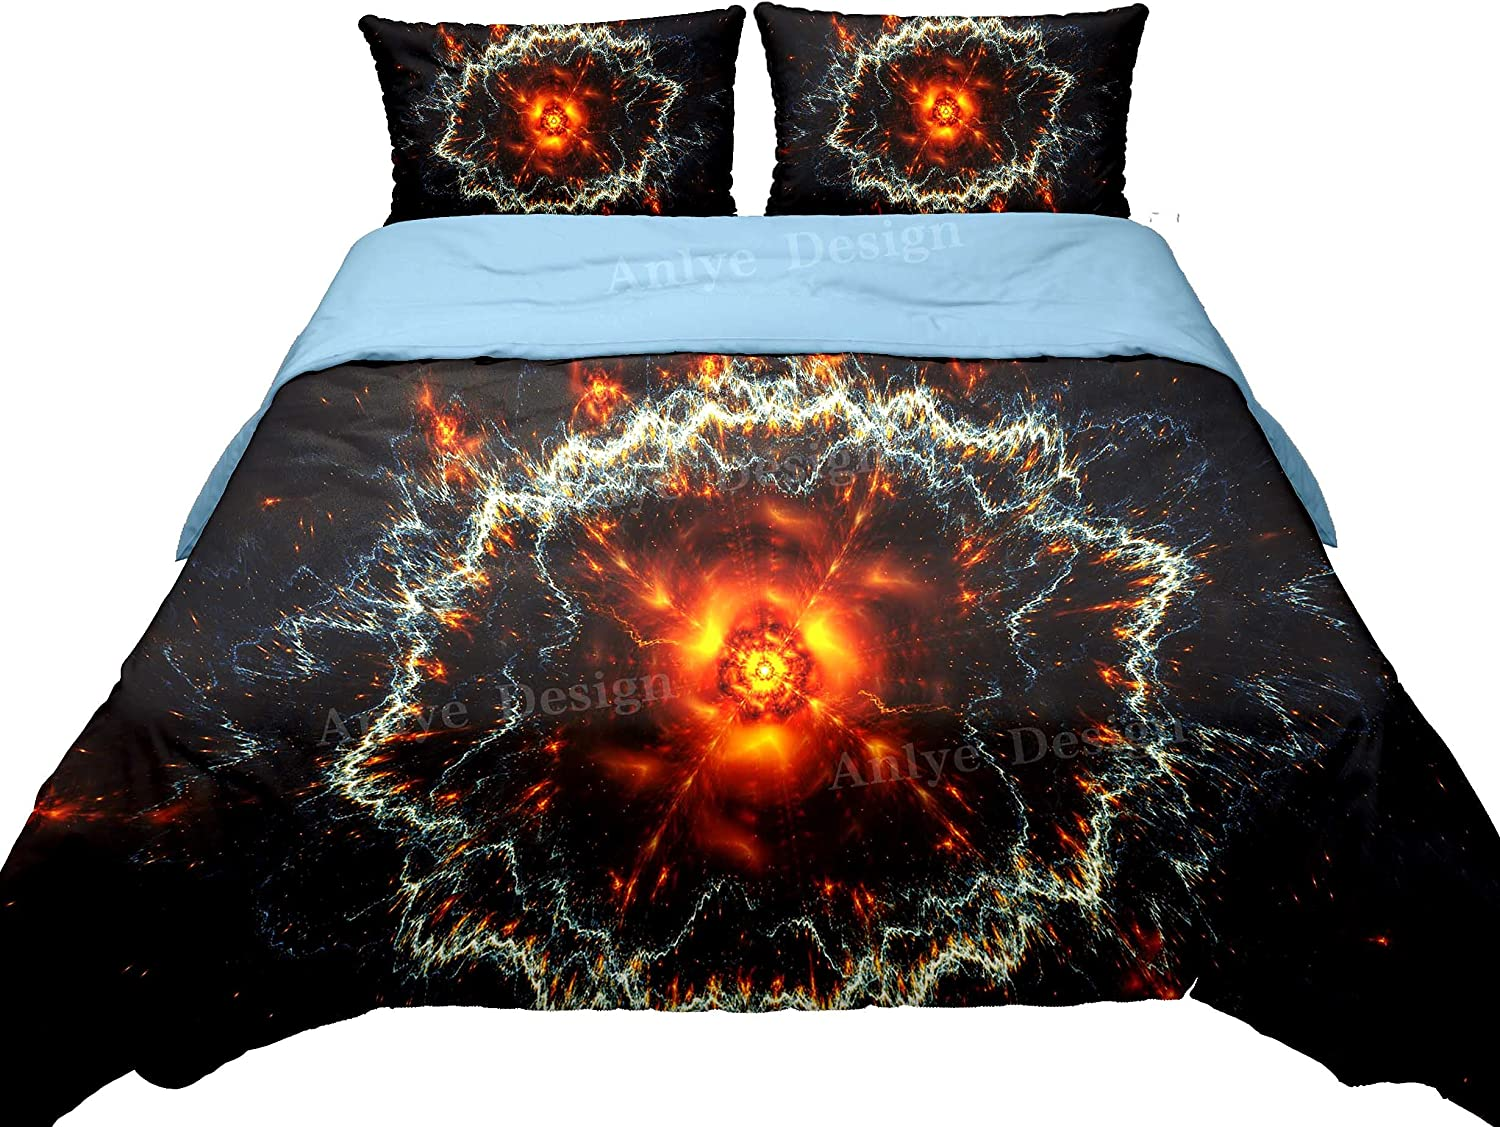 Anlye The Lord of Jacksonville Mall Rings Duvet OFFicial shop Cover Sauron's K Comforter Eye